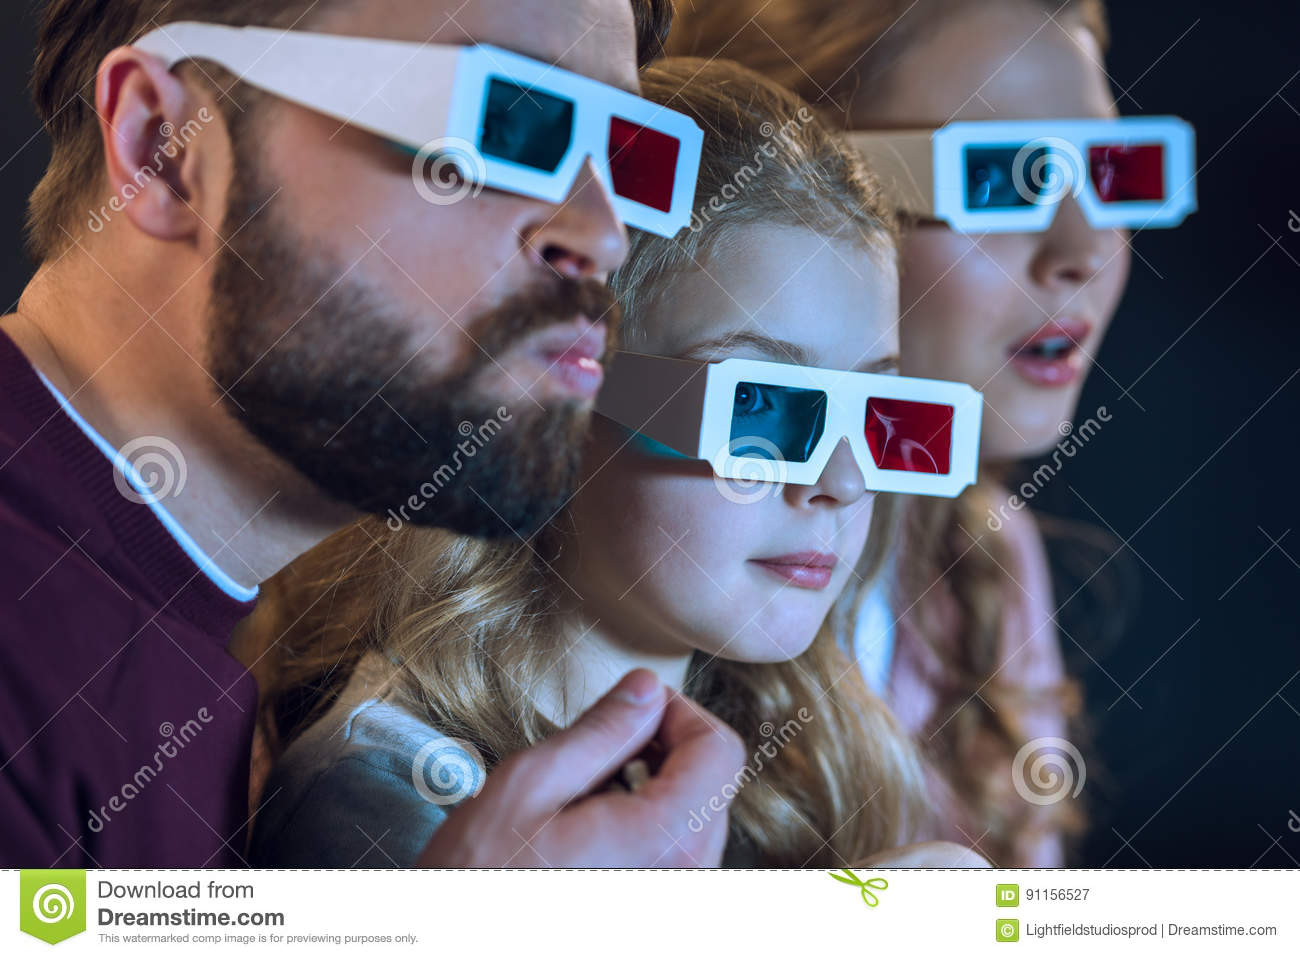 dea0322b95f Close-up view of family with one child wearing 3d glasses and watching movie